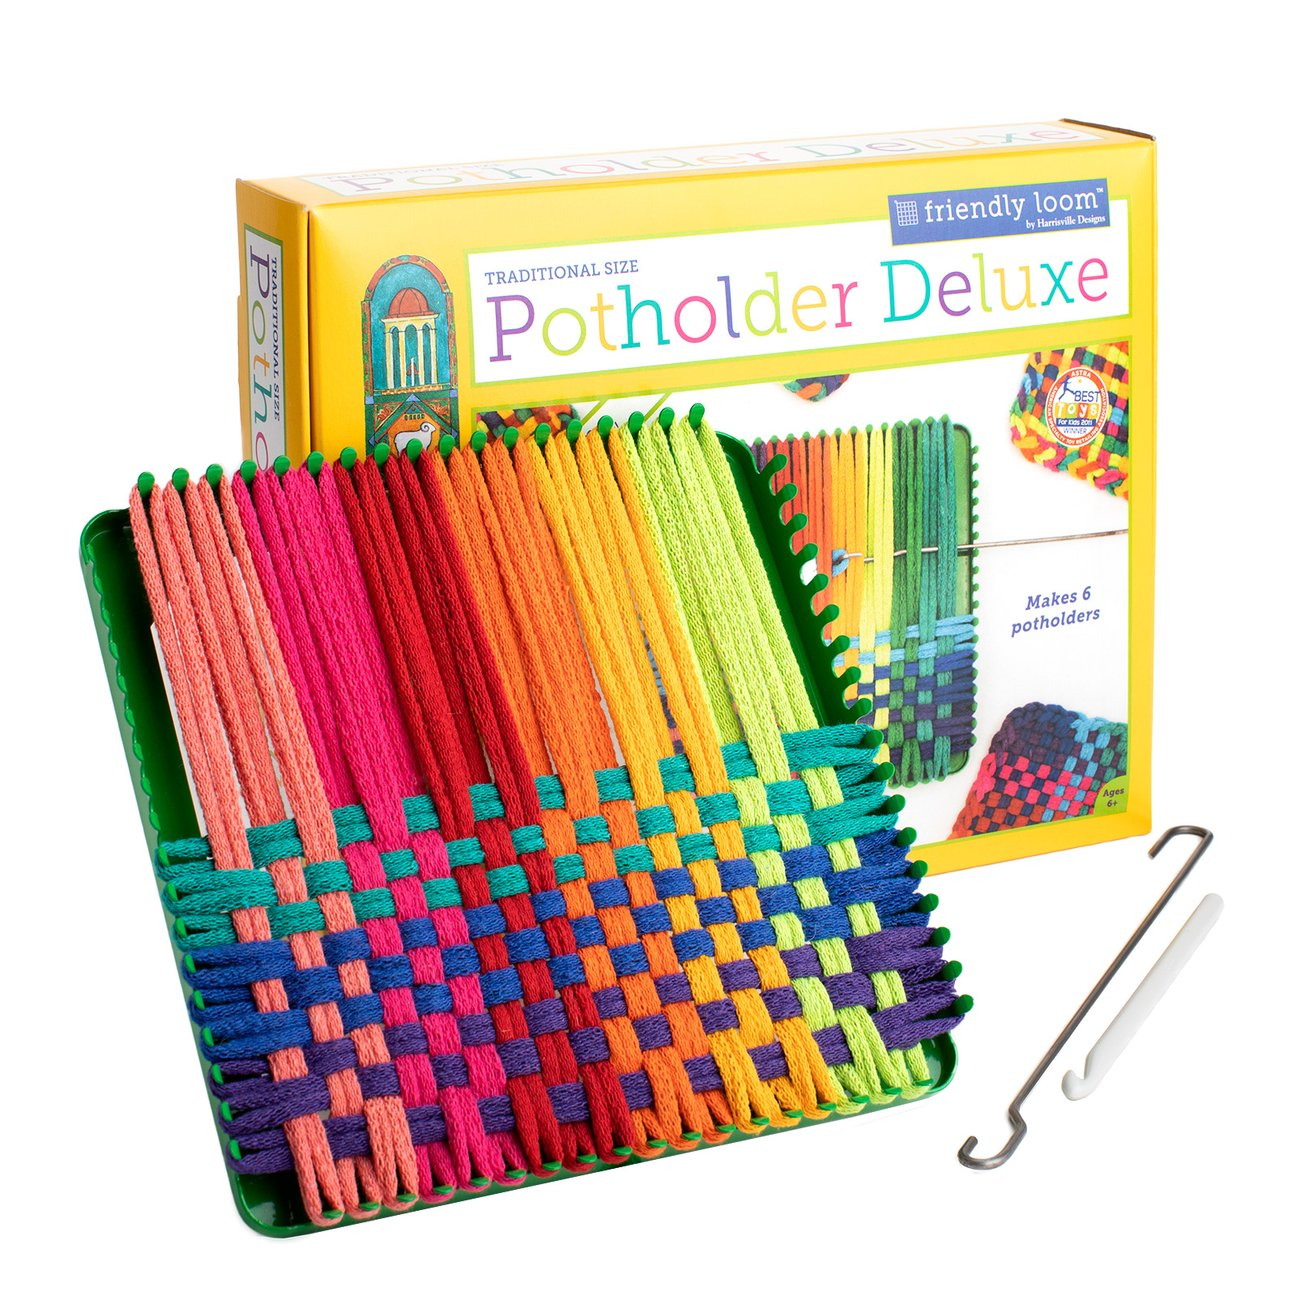 Potholder Deluxe Loom Kit